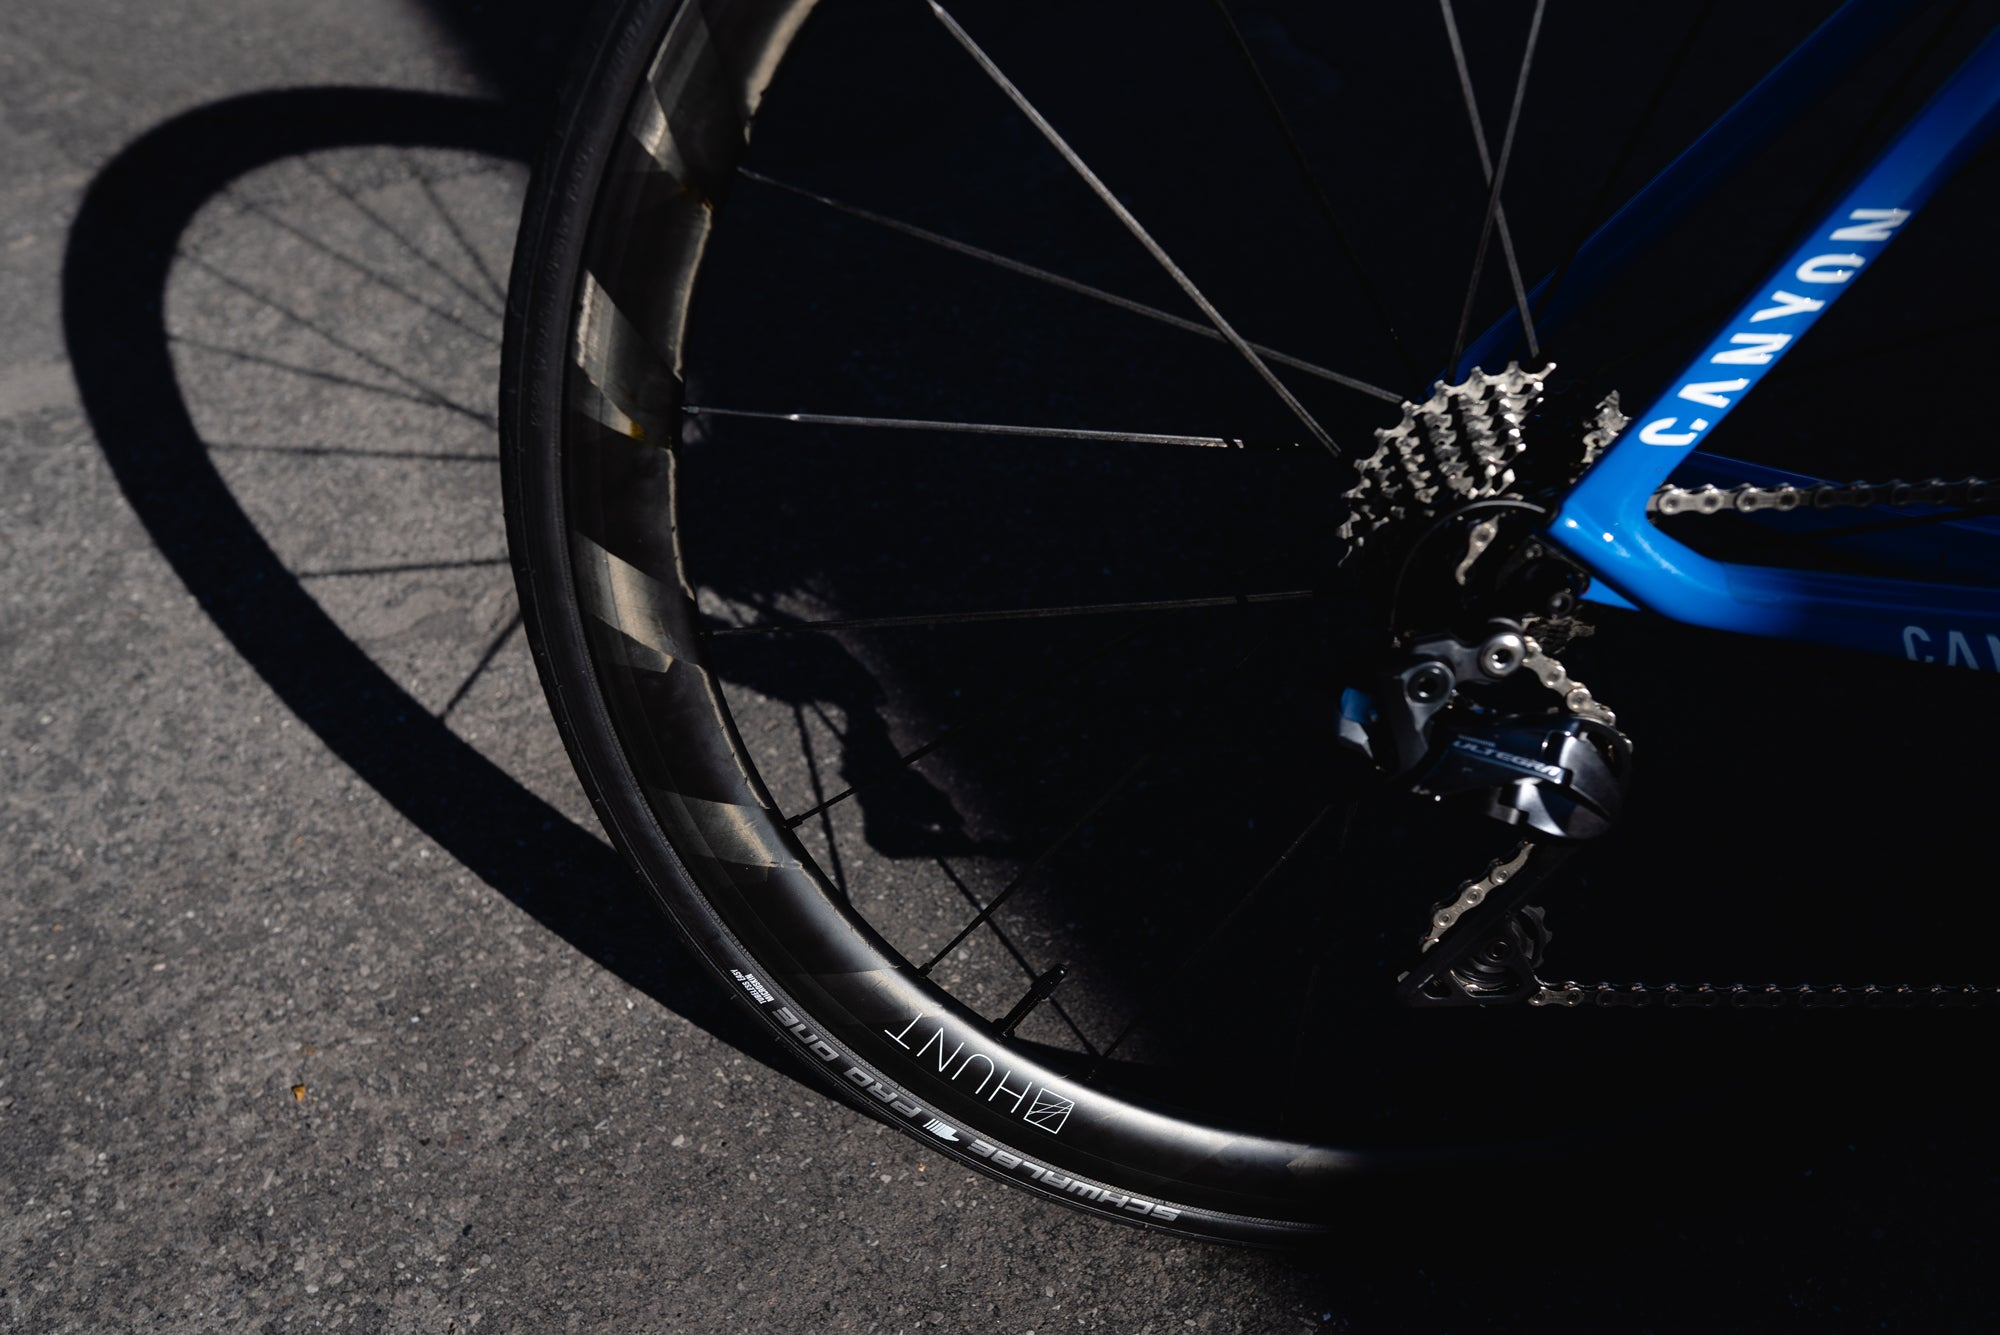 <h1>Tyres</h1><i>At HUNT, we enjoy the puncture resistance and grip benefits of tubeless on our every-day rides so we wanted to allow our customers the same option. Of course, all of our tubeless-ready wheels are designed to work perfectly with clincher tyres and inner tubes too.</i>